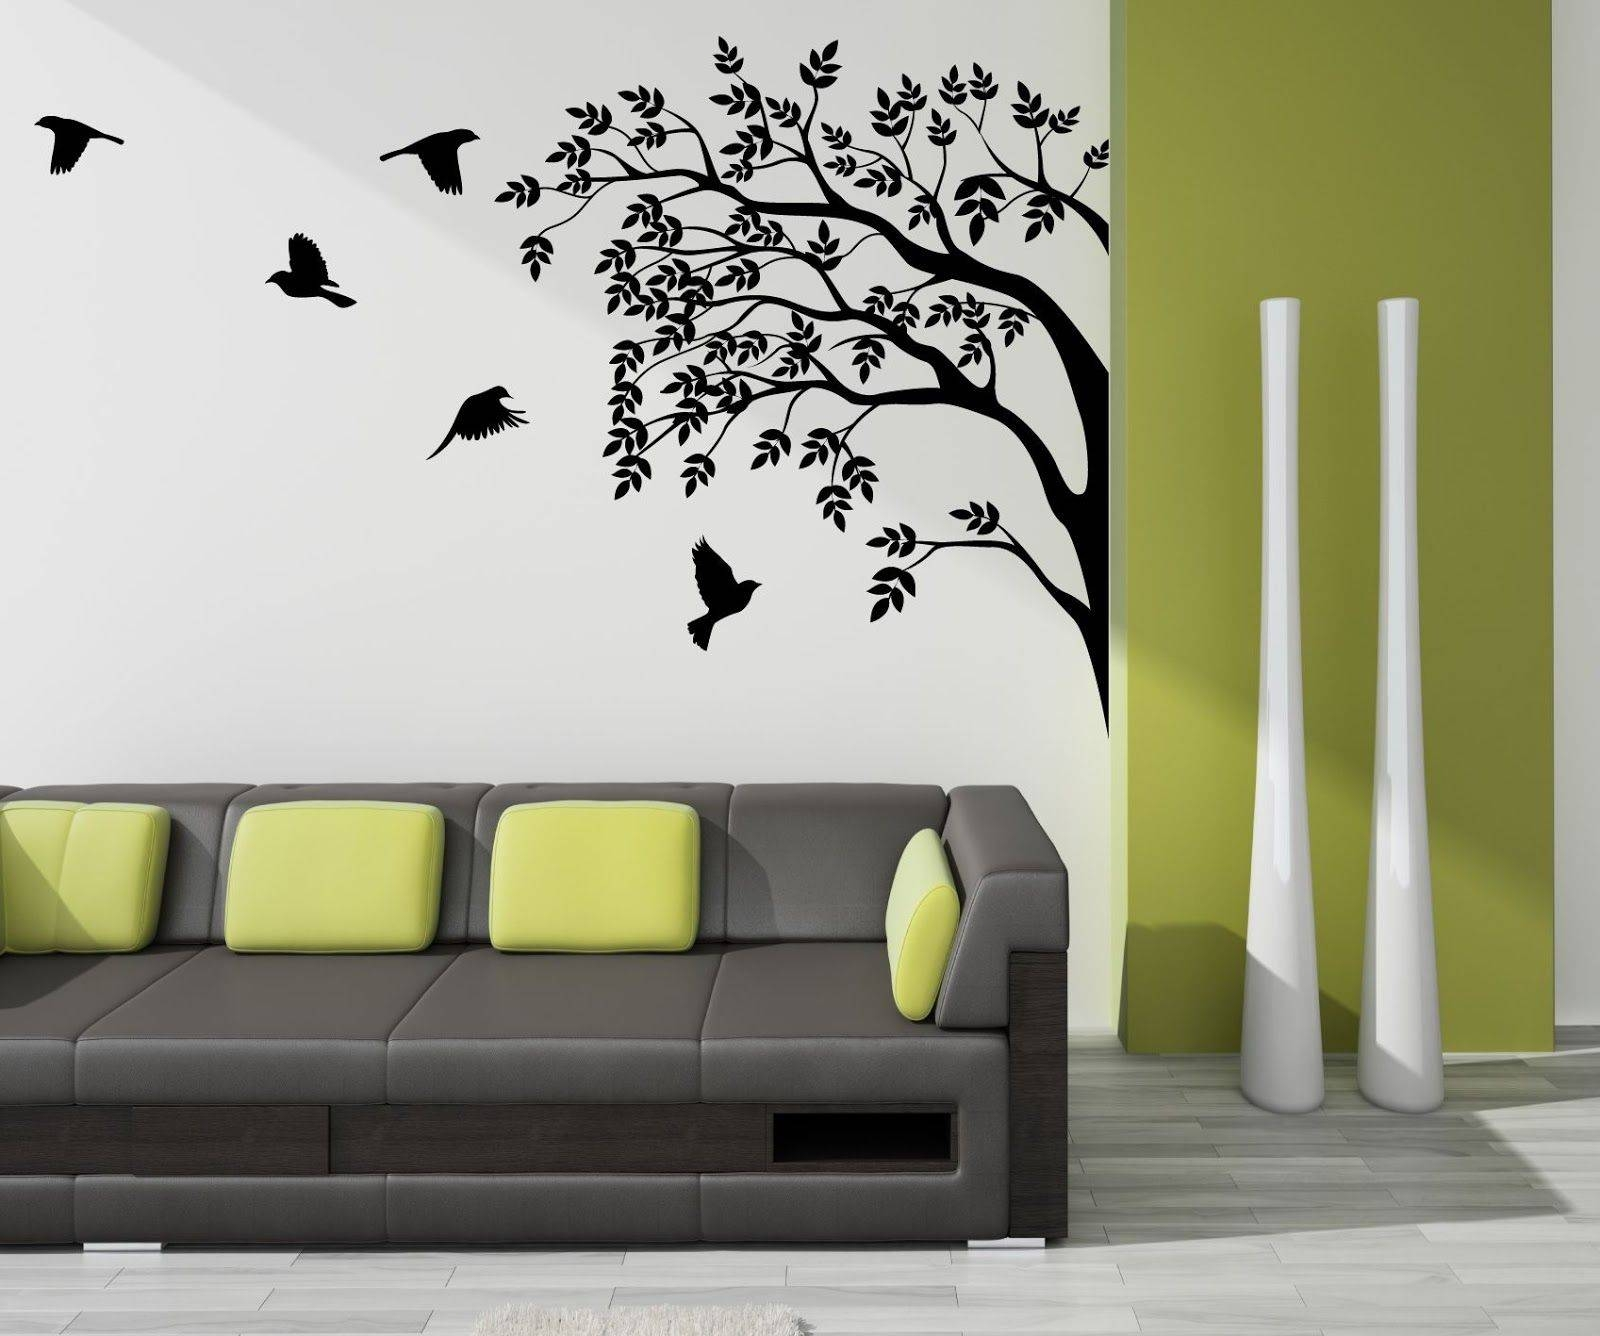 Decoration For Your Home Interior With Stunning Tree Images Wall Art Regarding Current Bangalore 3d Wall Art (View 15 of 20)